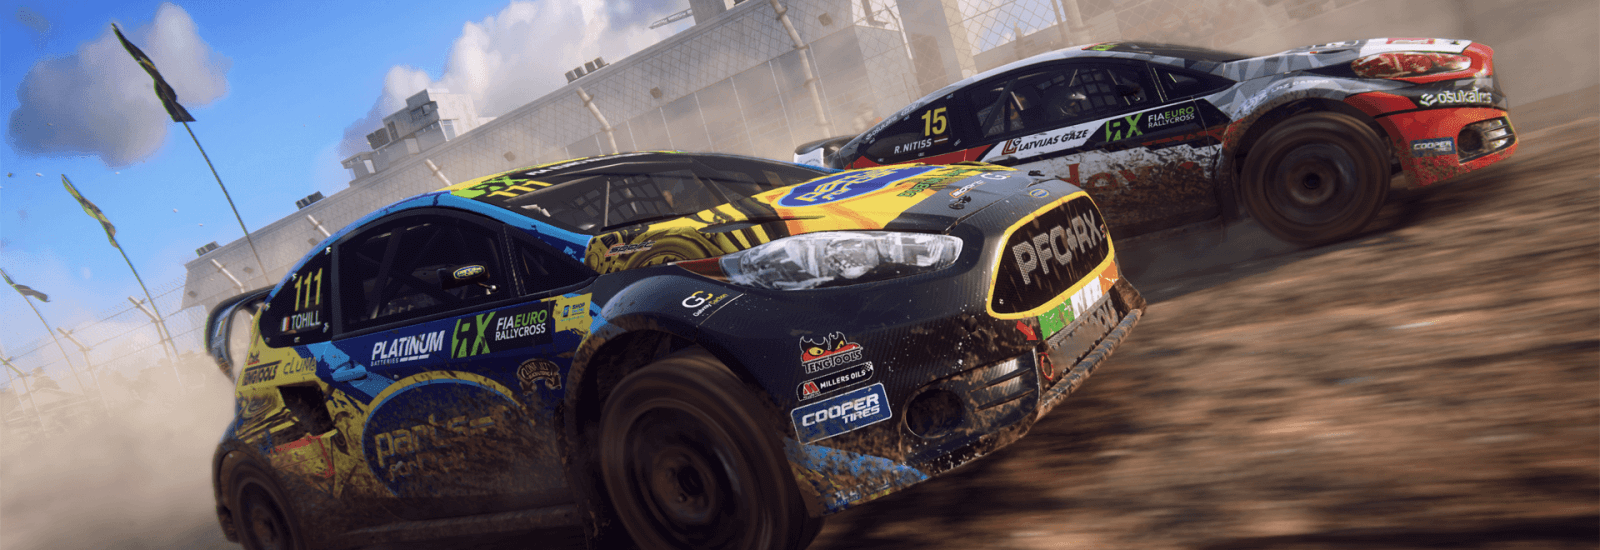 dirt rally 2 0 pc ps4 xbox one digital games. Black Bedroom Furniture Sets. Home Design Ideas